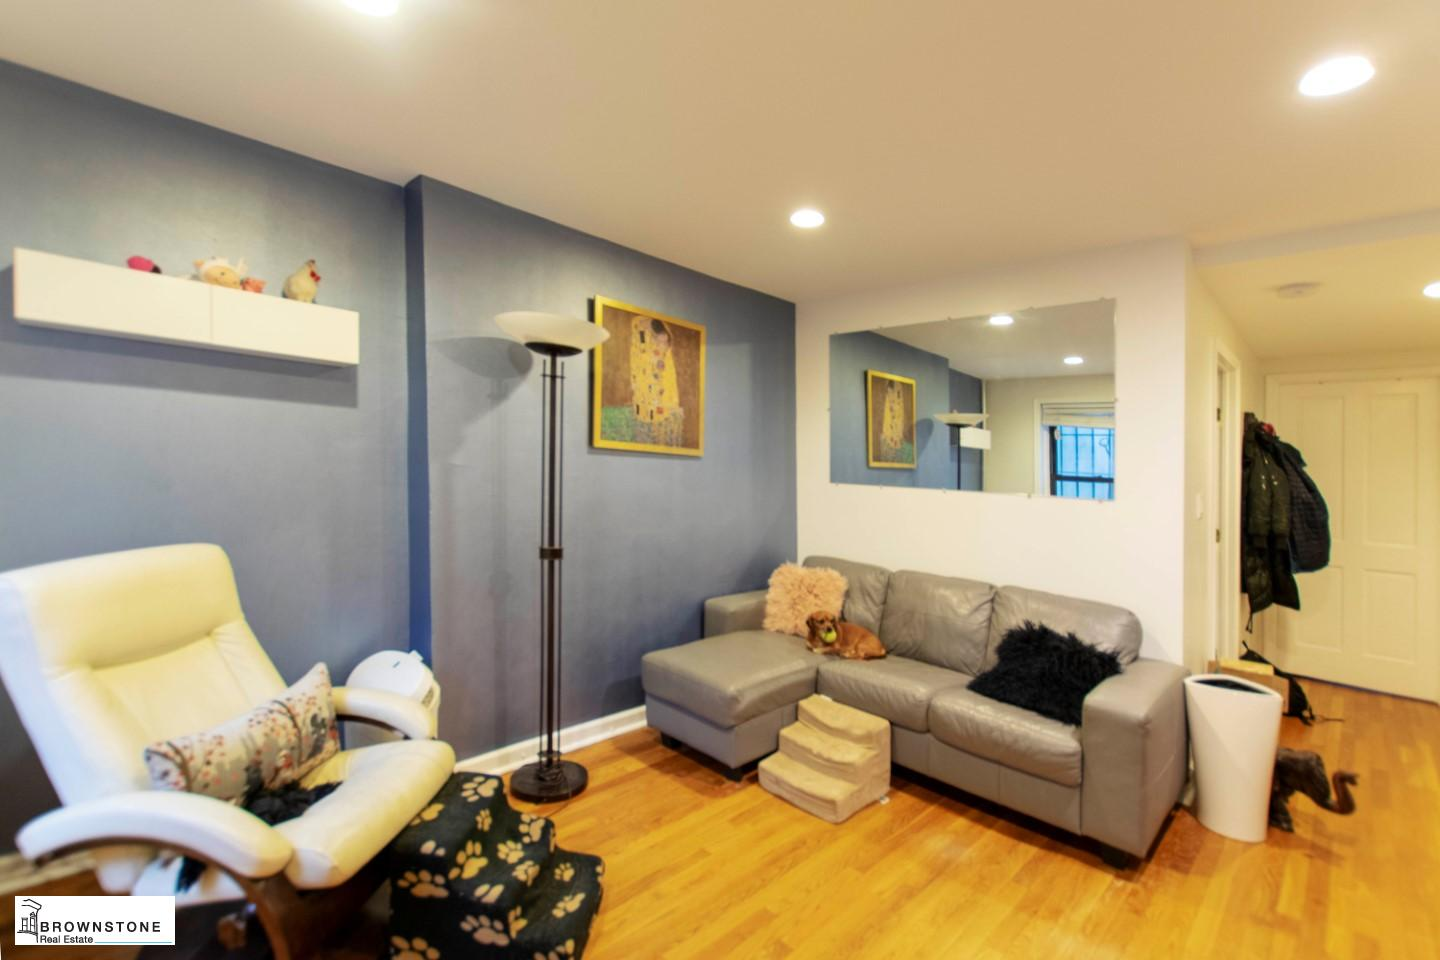 469 STATE ST, #1